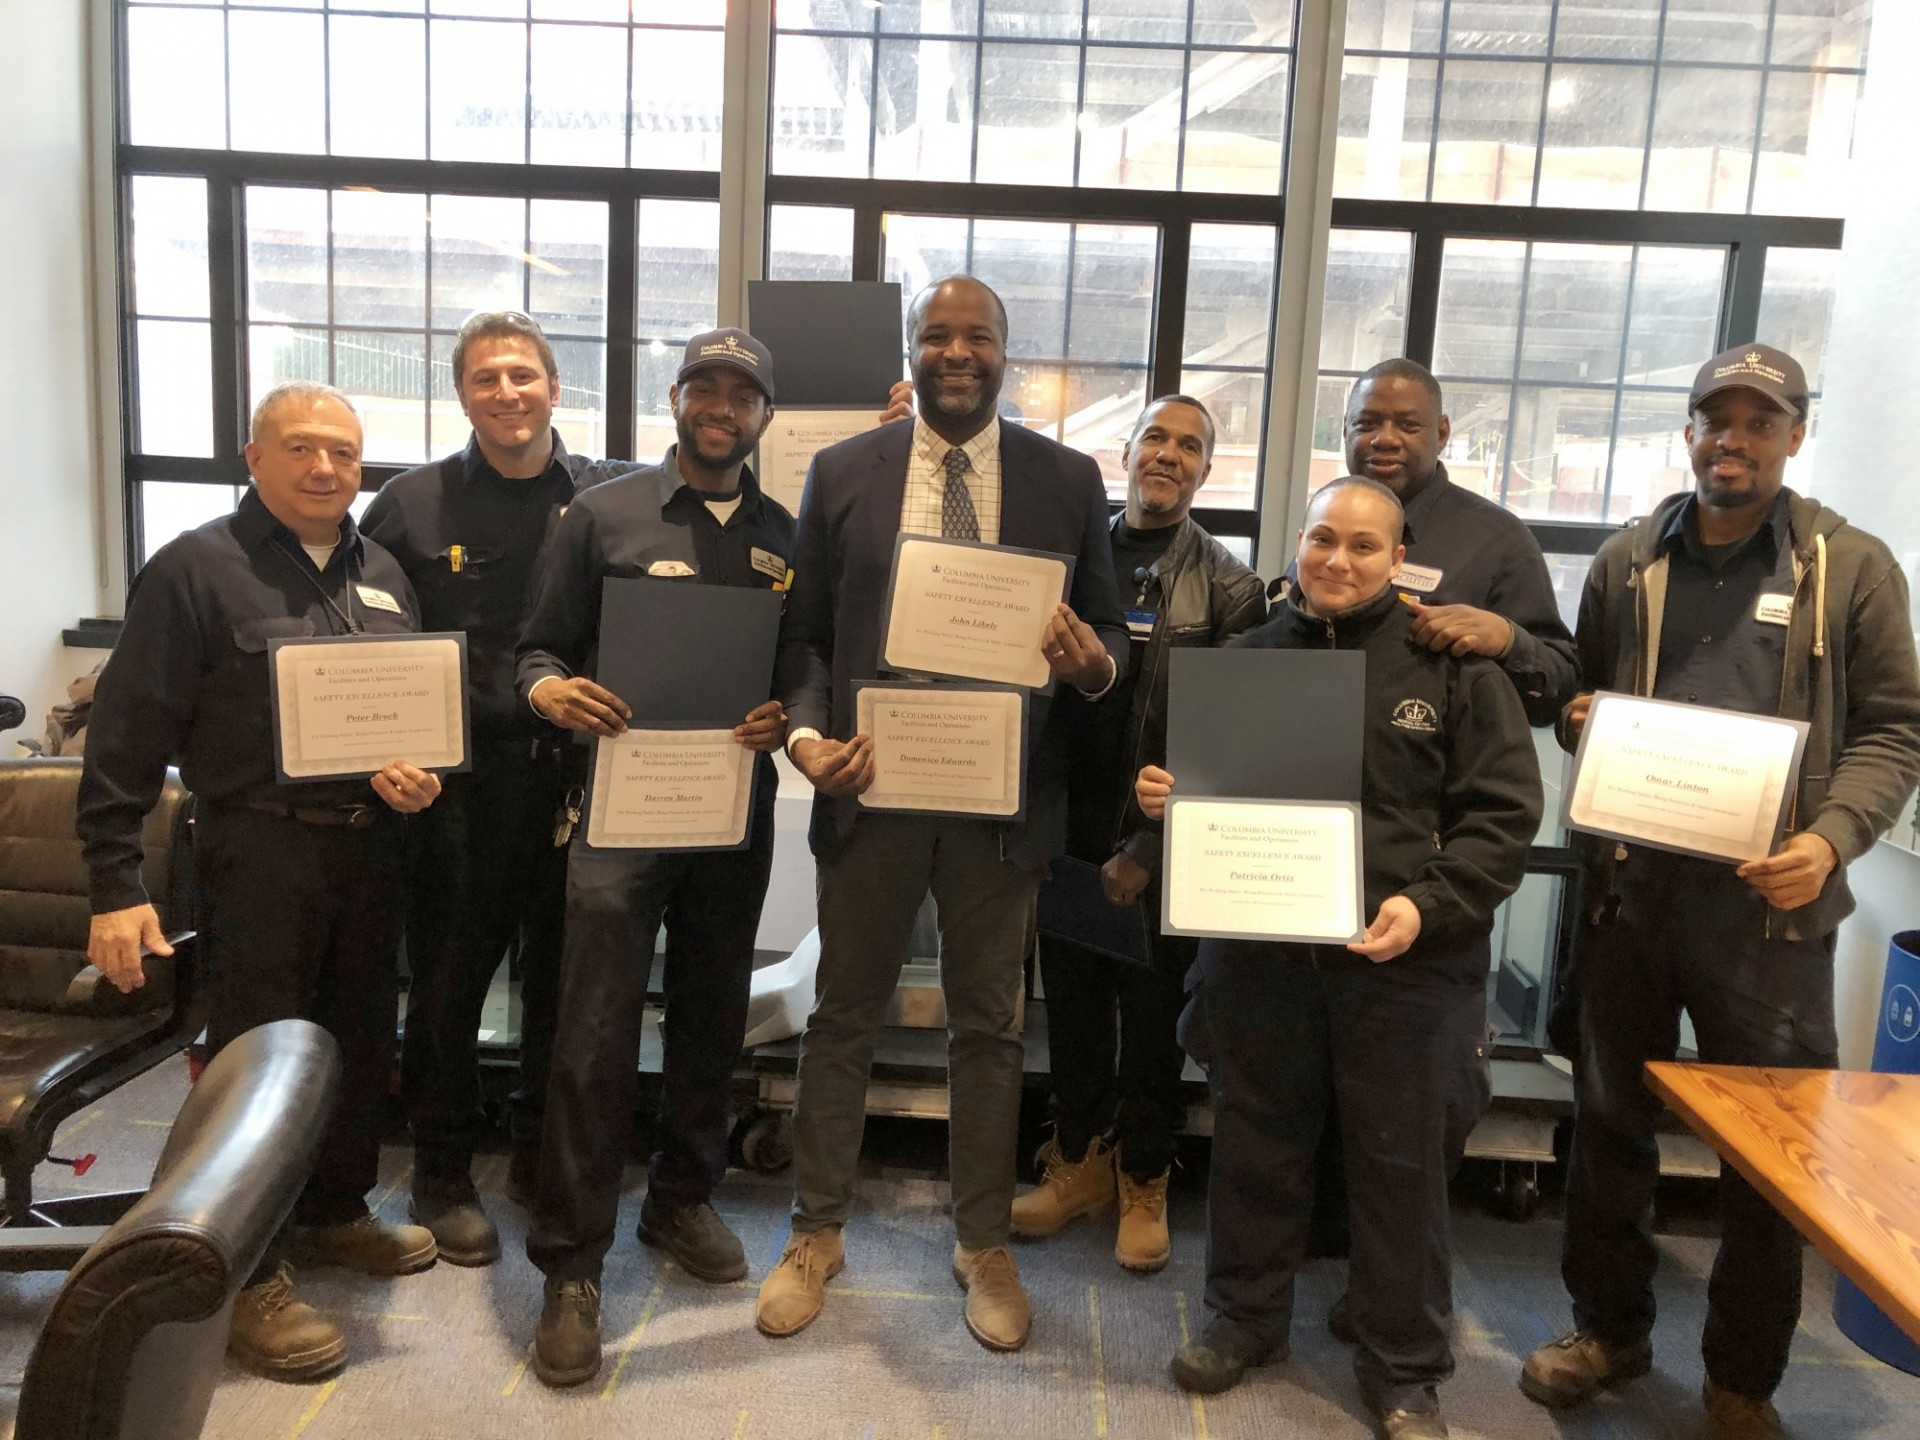 Honorees at the 2019 Safety Excellence Awards Ceremony at the Manhattanville Campus